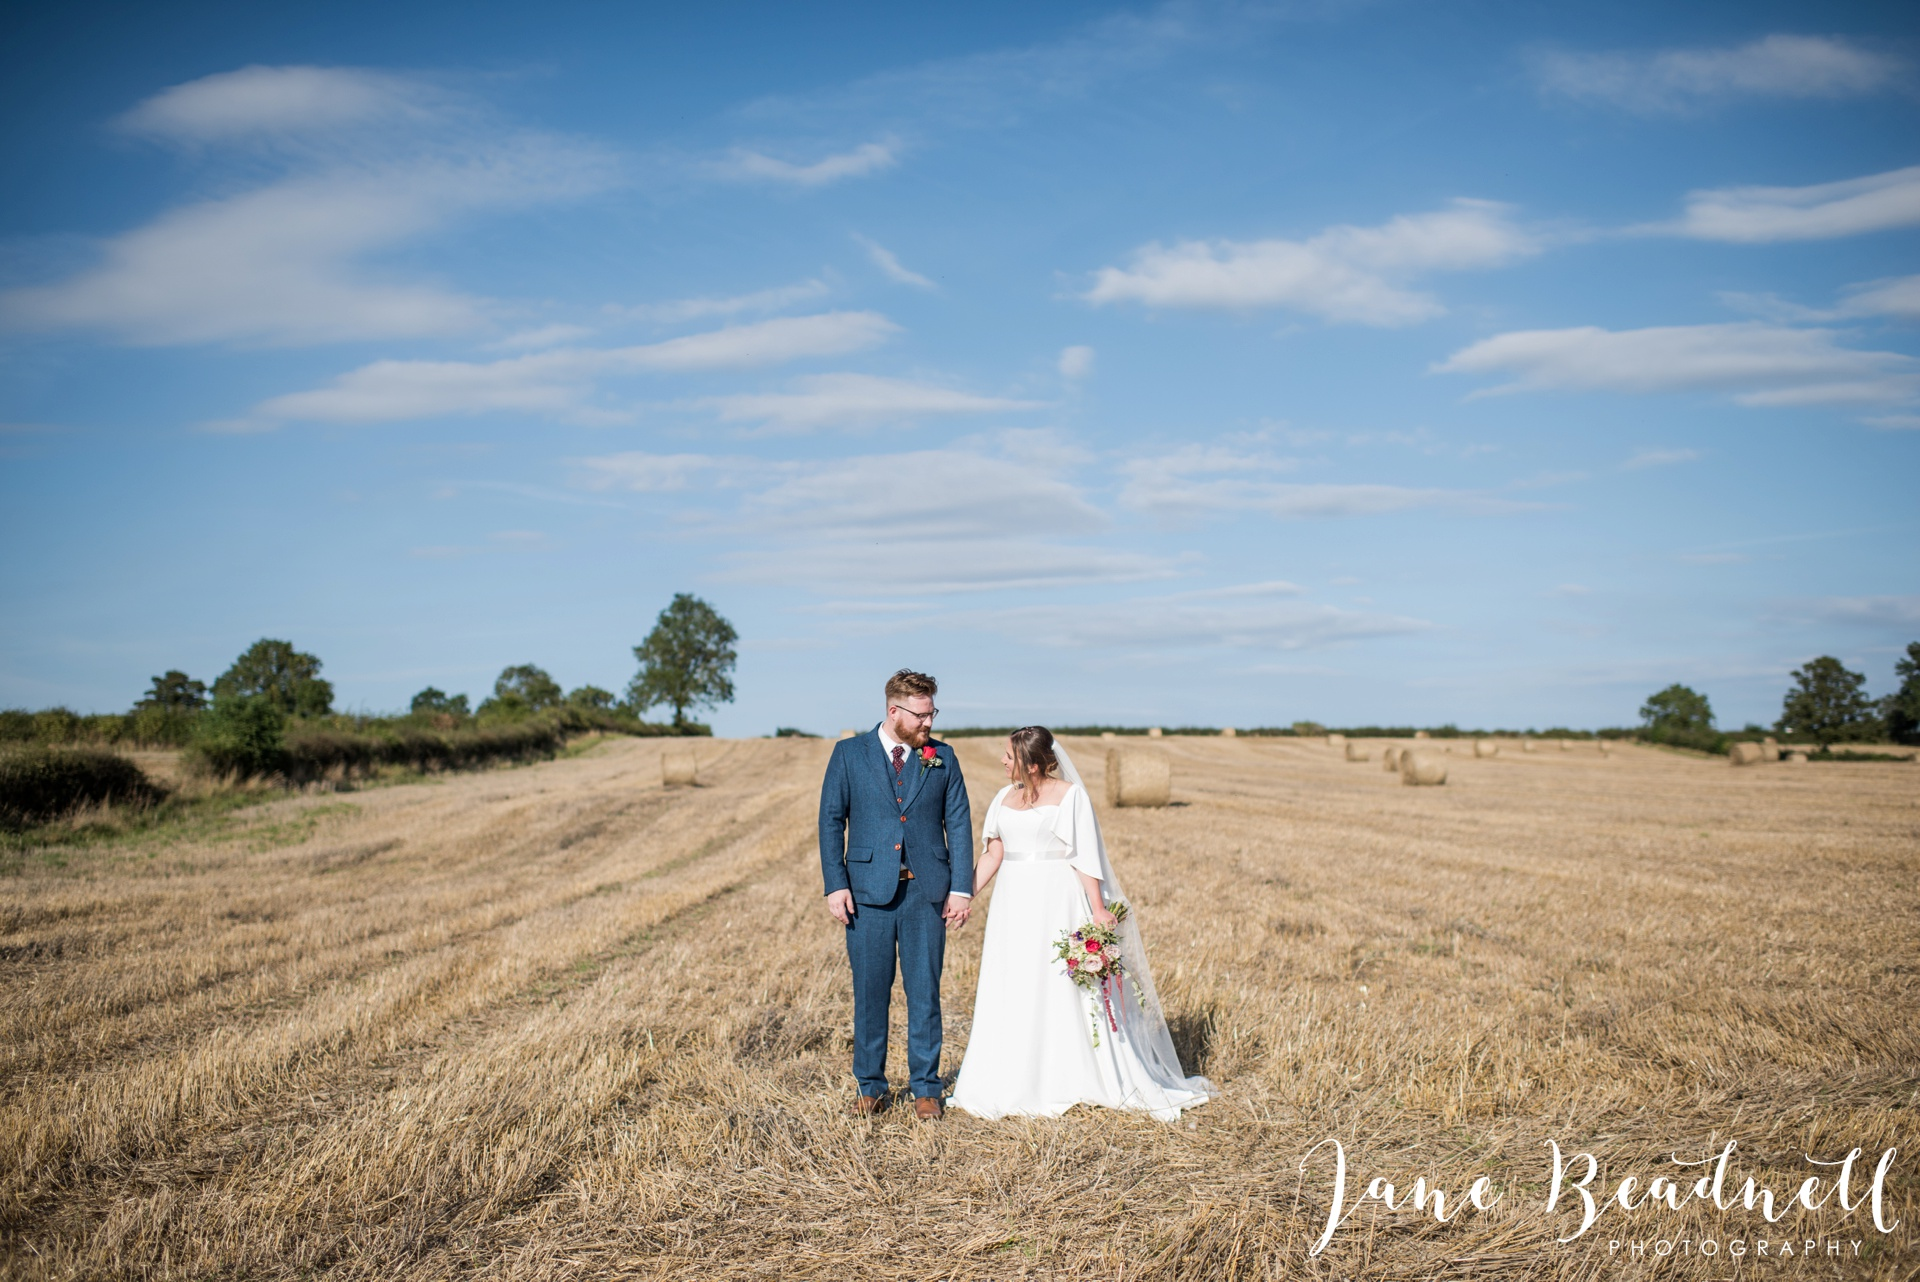 yorkshire-fine-art-wedding-photographer-jane-beadnell-photography_0006